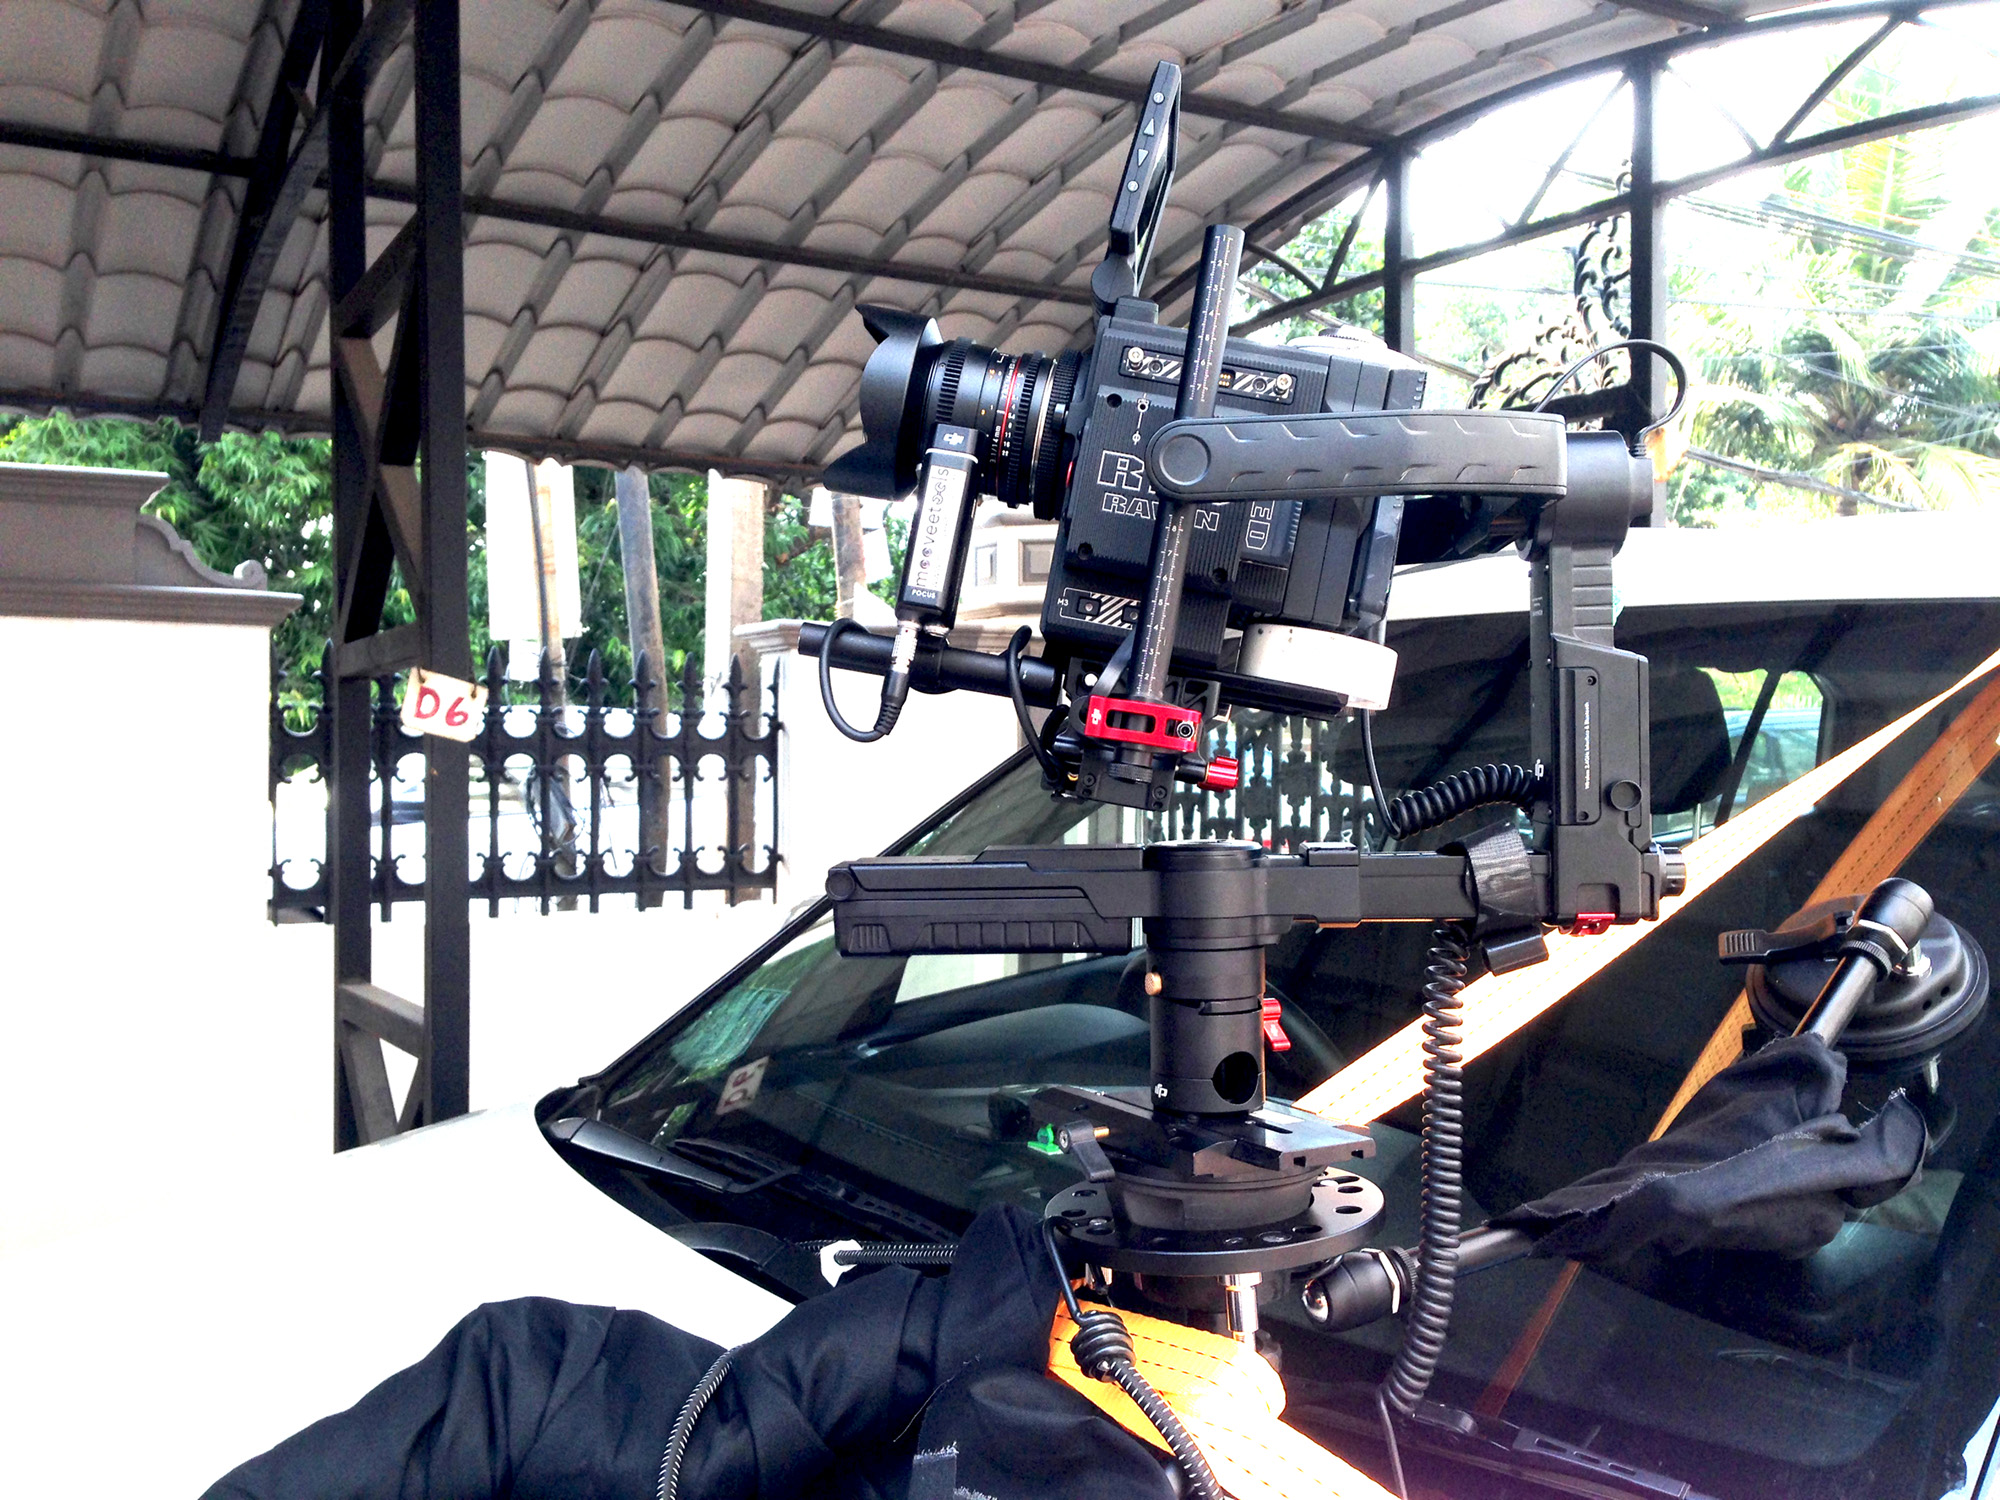 Car rig with Ronin mx